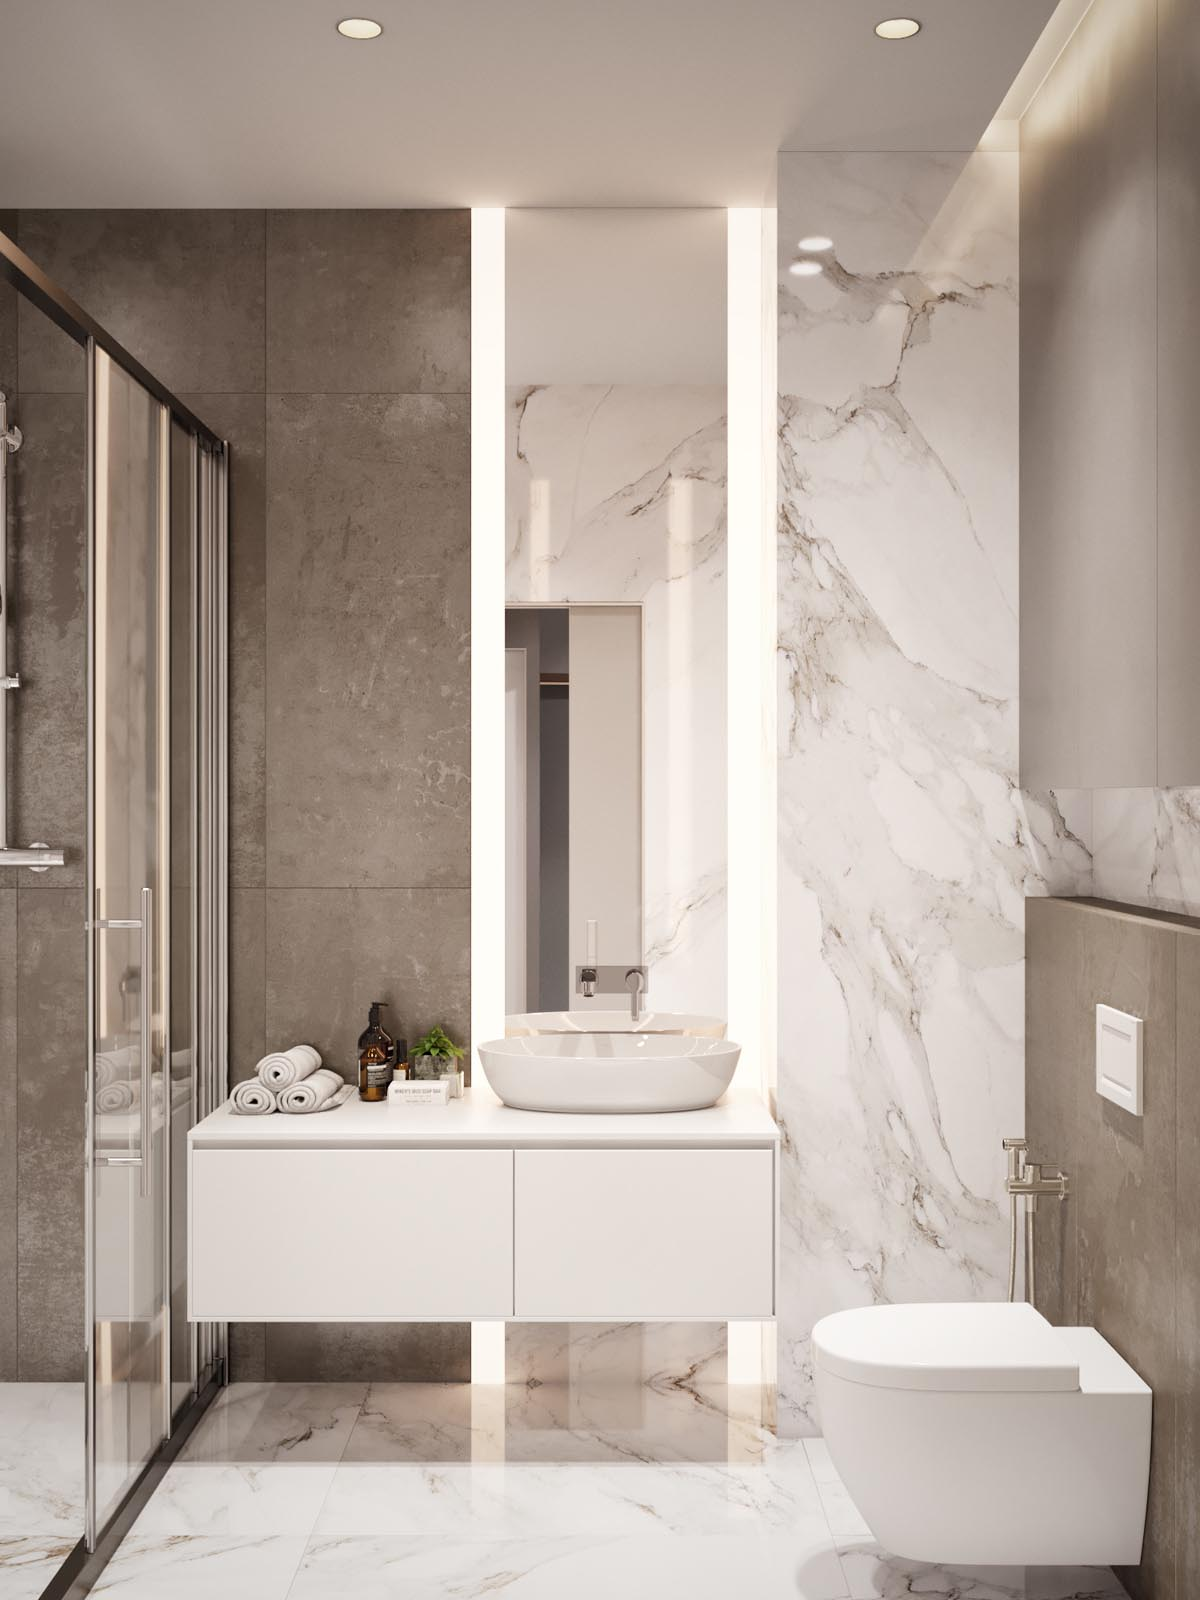 Home Design Under 60 Square Meters: 3 Examples That ... on Bathroom Designs For Small Spaces  id=95442